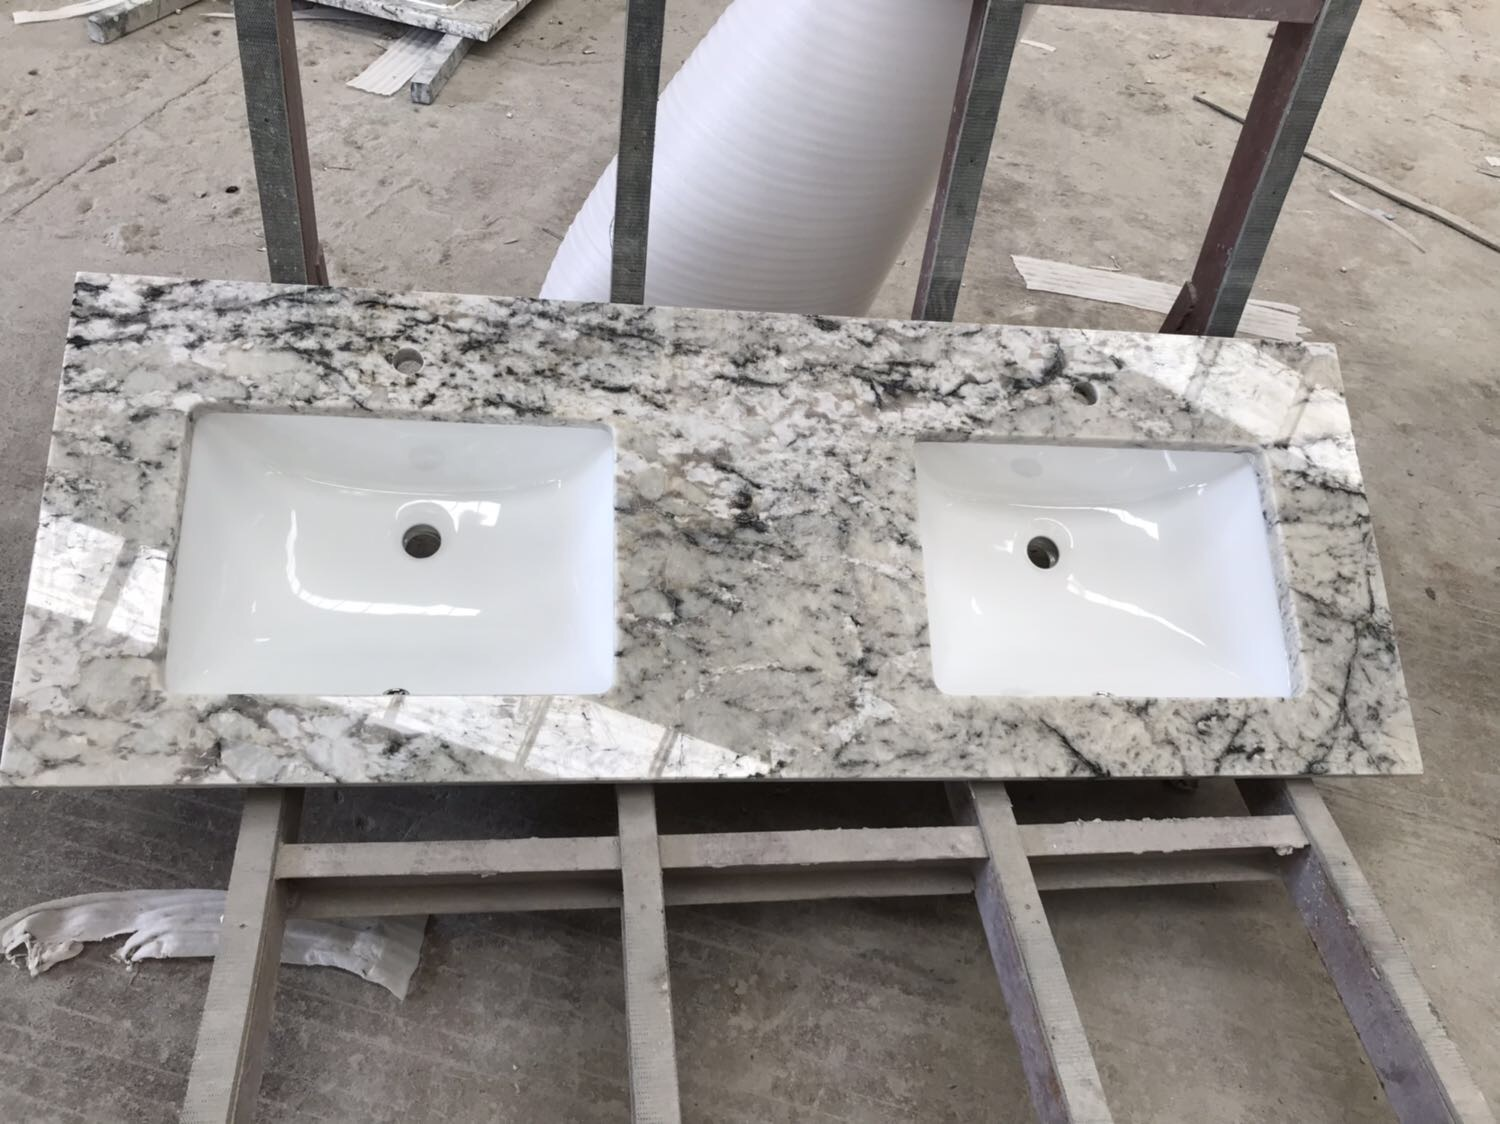 How much are granite countertops,bathroom counter tops,white kitchen countertops,home depot kitchen countertops,lowes kitchen countertops,table design